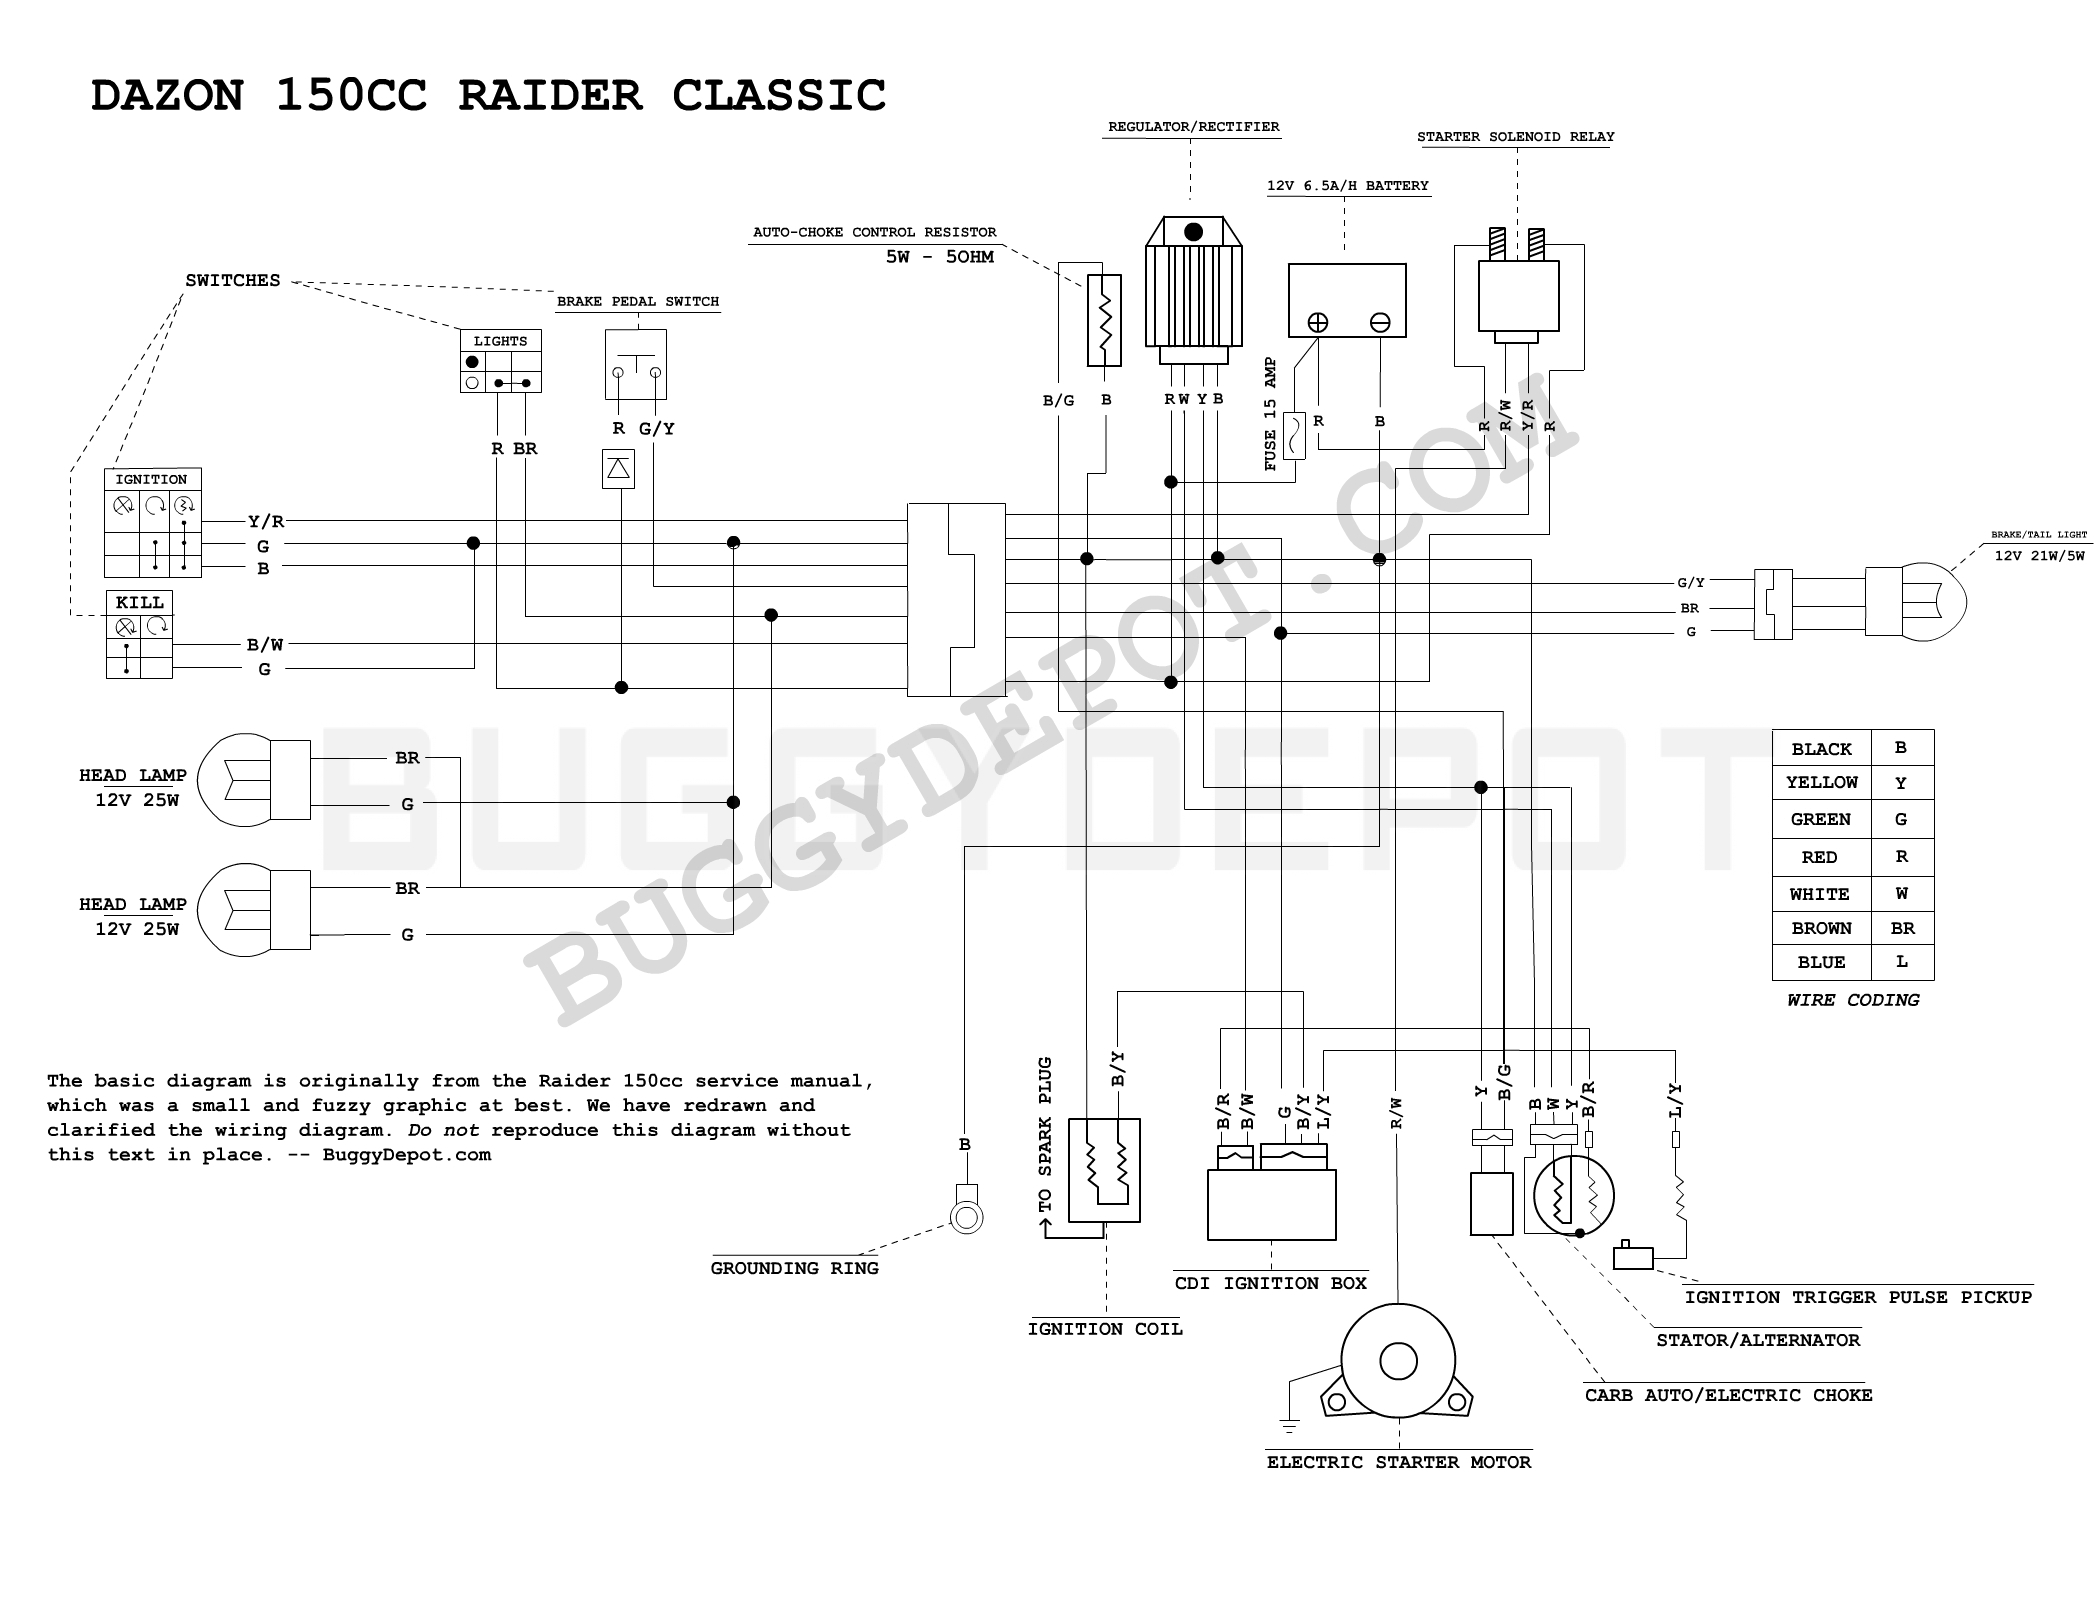 Rail Buggy Wiring Diagram Great Installation Of Volkswagen Dune Harness Simple Post Rh 29 Asiagourmet Igb De Vw